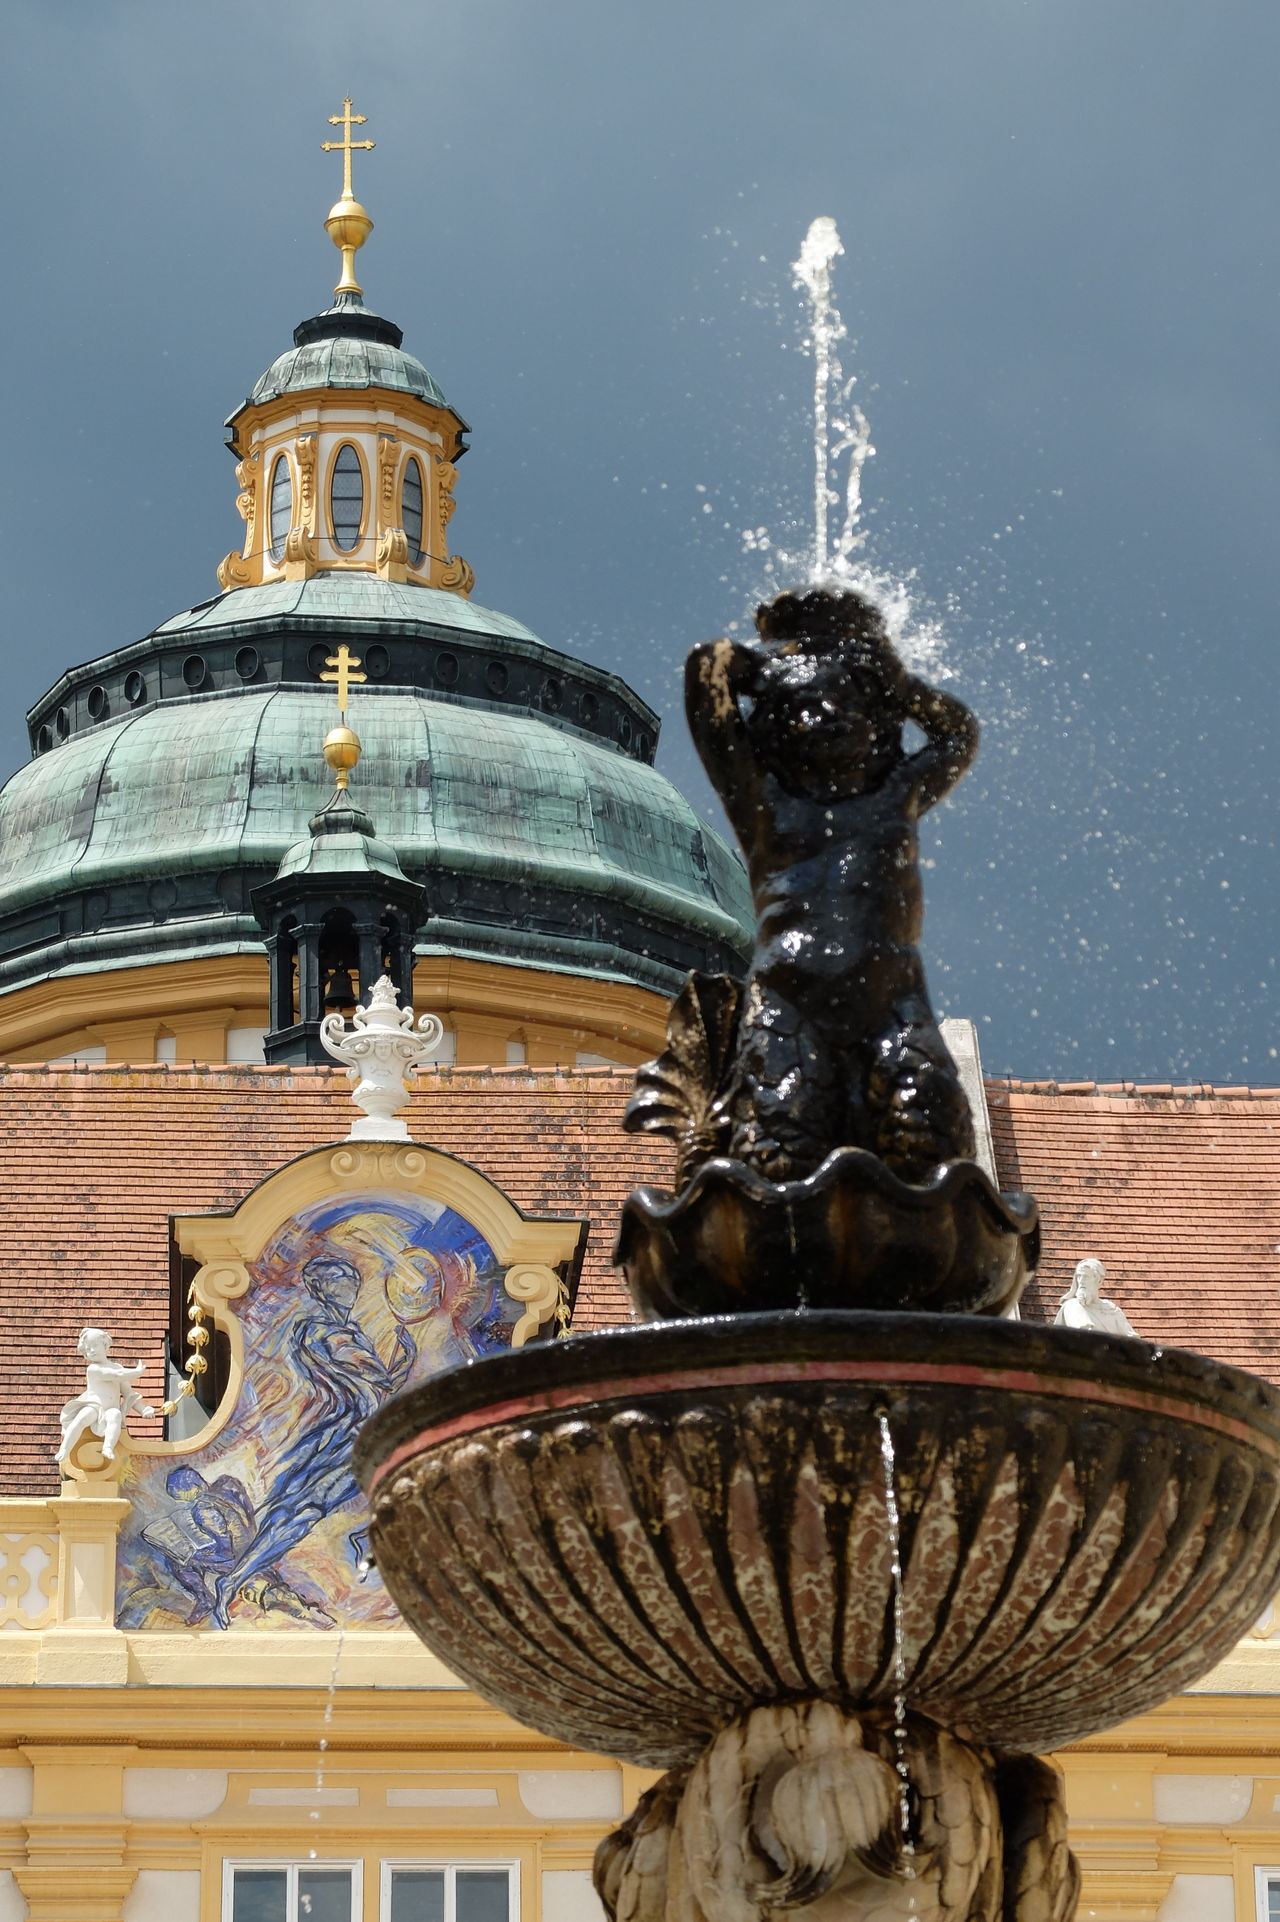 Fountain Architecture Built Structure City Close-up Day Kloster Melk Melk No People Outdoors Sky Statue STIFT MELK Travel Travel Destinations